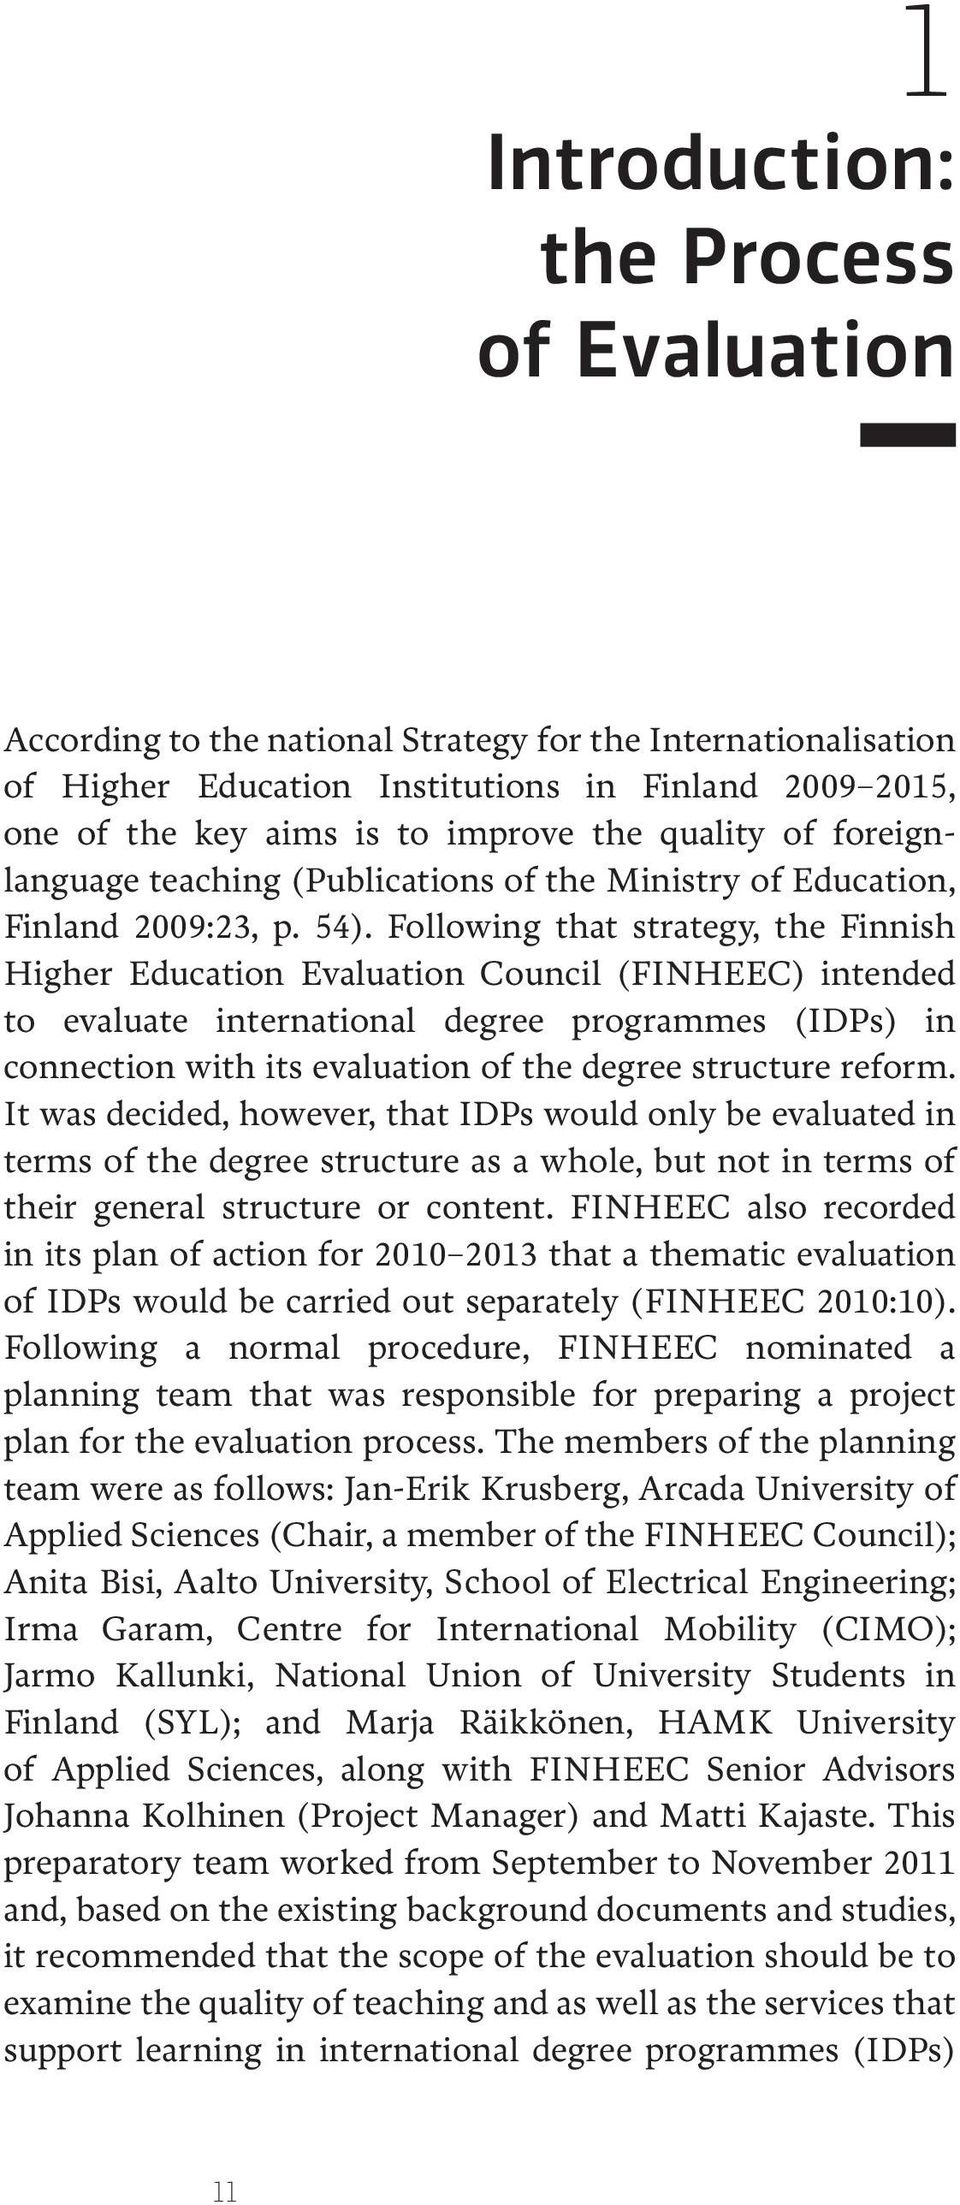 Following that strategy, the Finnish Higher Education Evaluation Council (FINHEEC) intended to evaluate international degree programmes (IDPs) in connection with its evaluation of the degree